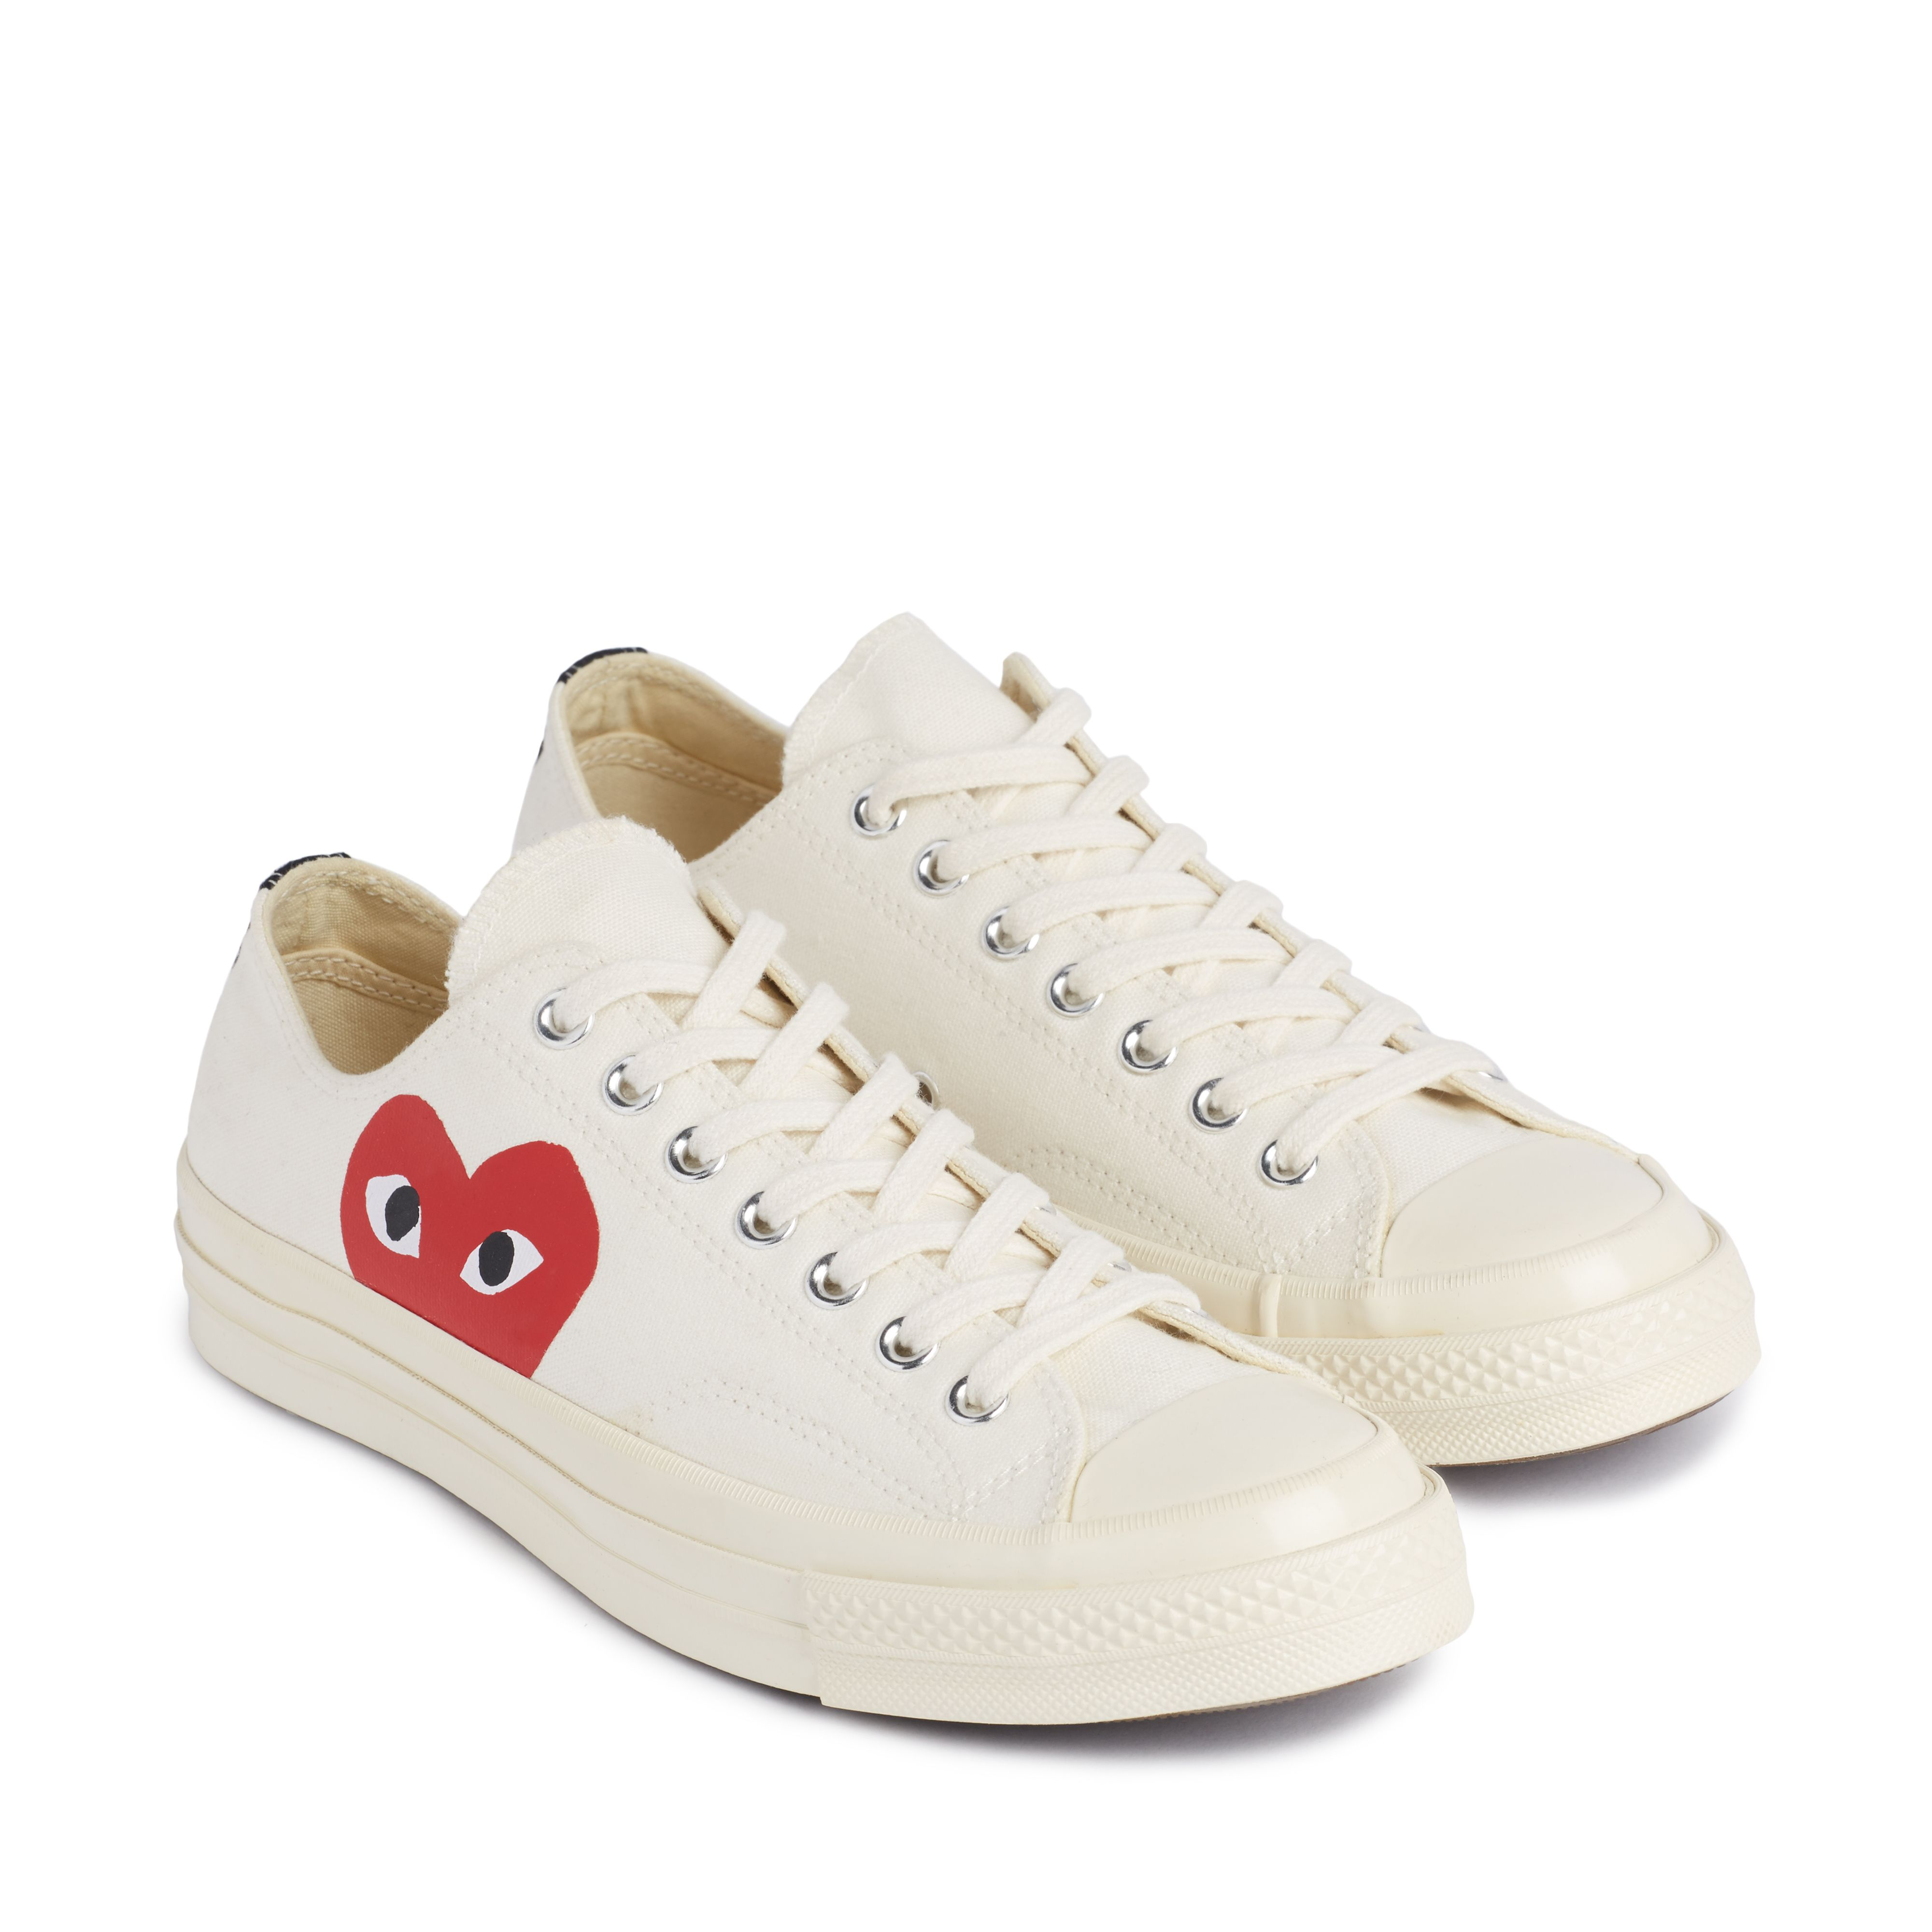 American brand Converse Chuck Taylor collaborates with ...